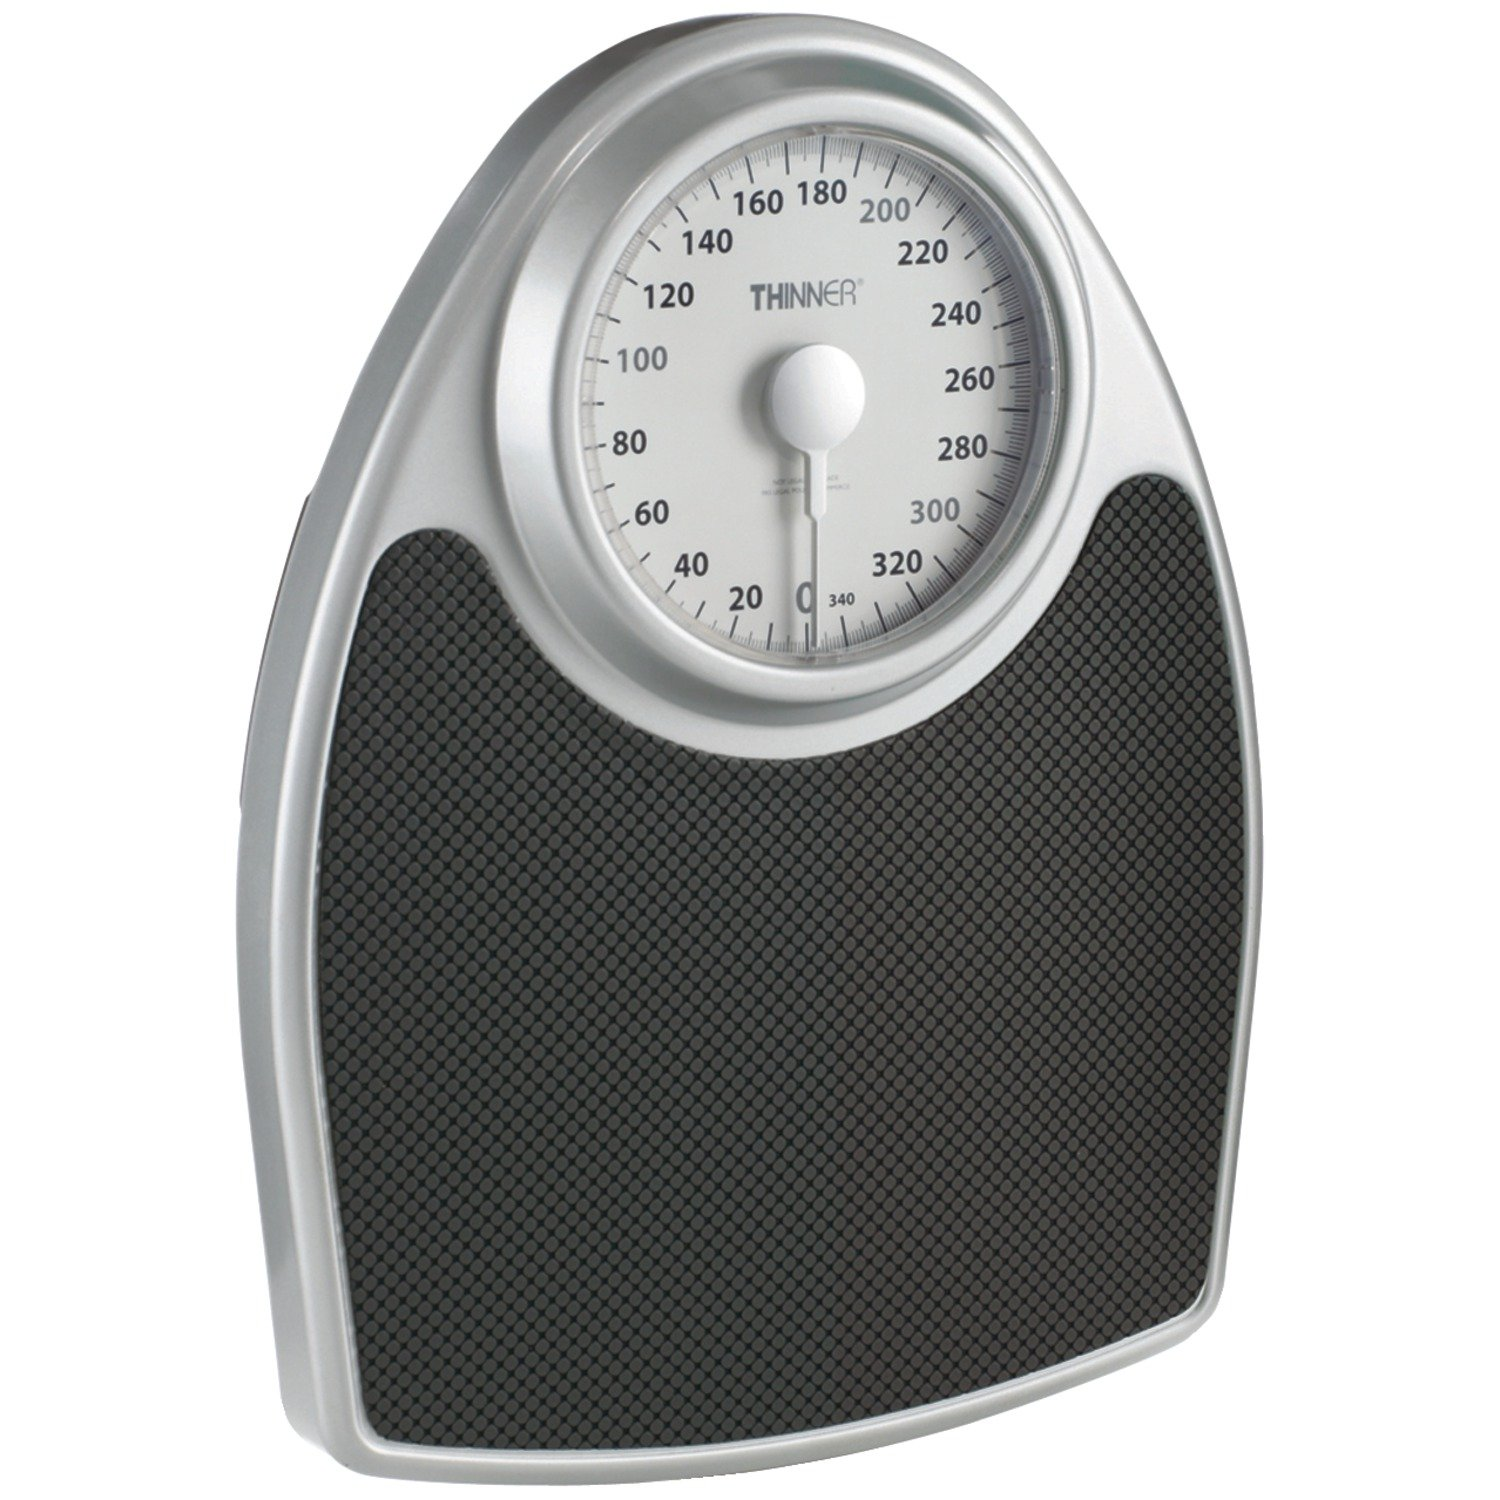 Thinner Extra-Large Dial Analog Precision Bathroom Scale; Bath Scale CONAIR Thinner Scales TH100S